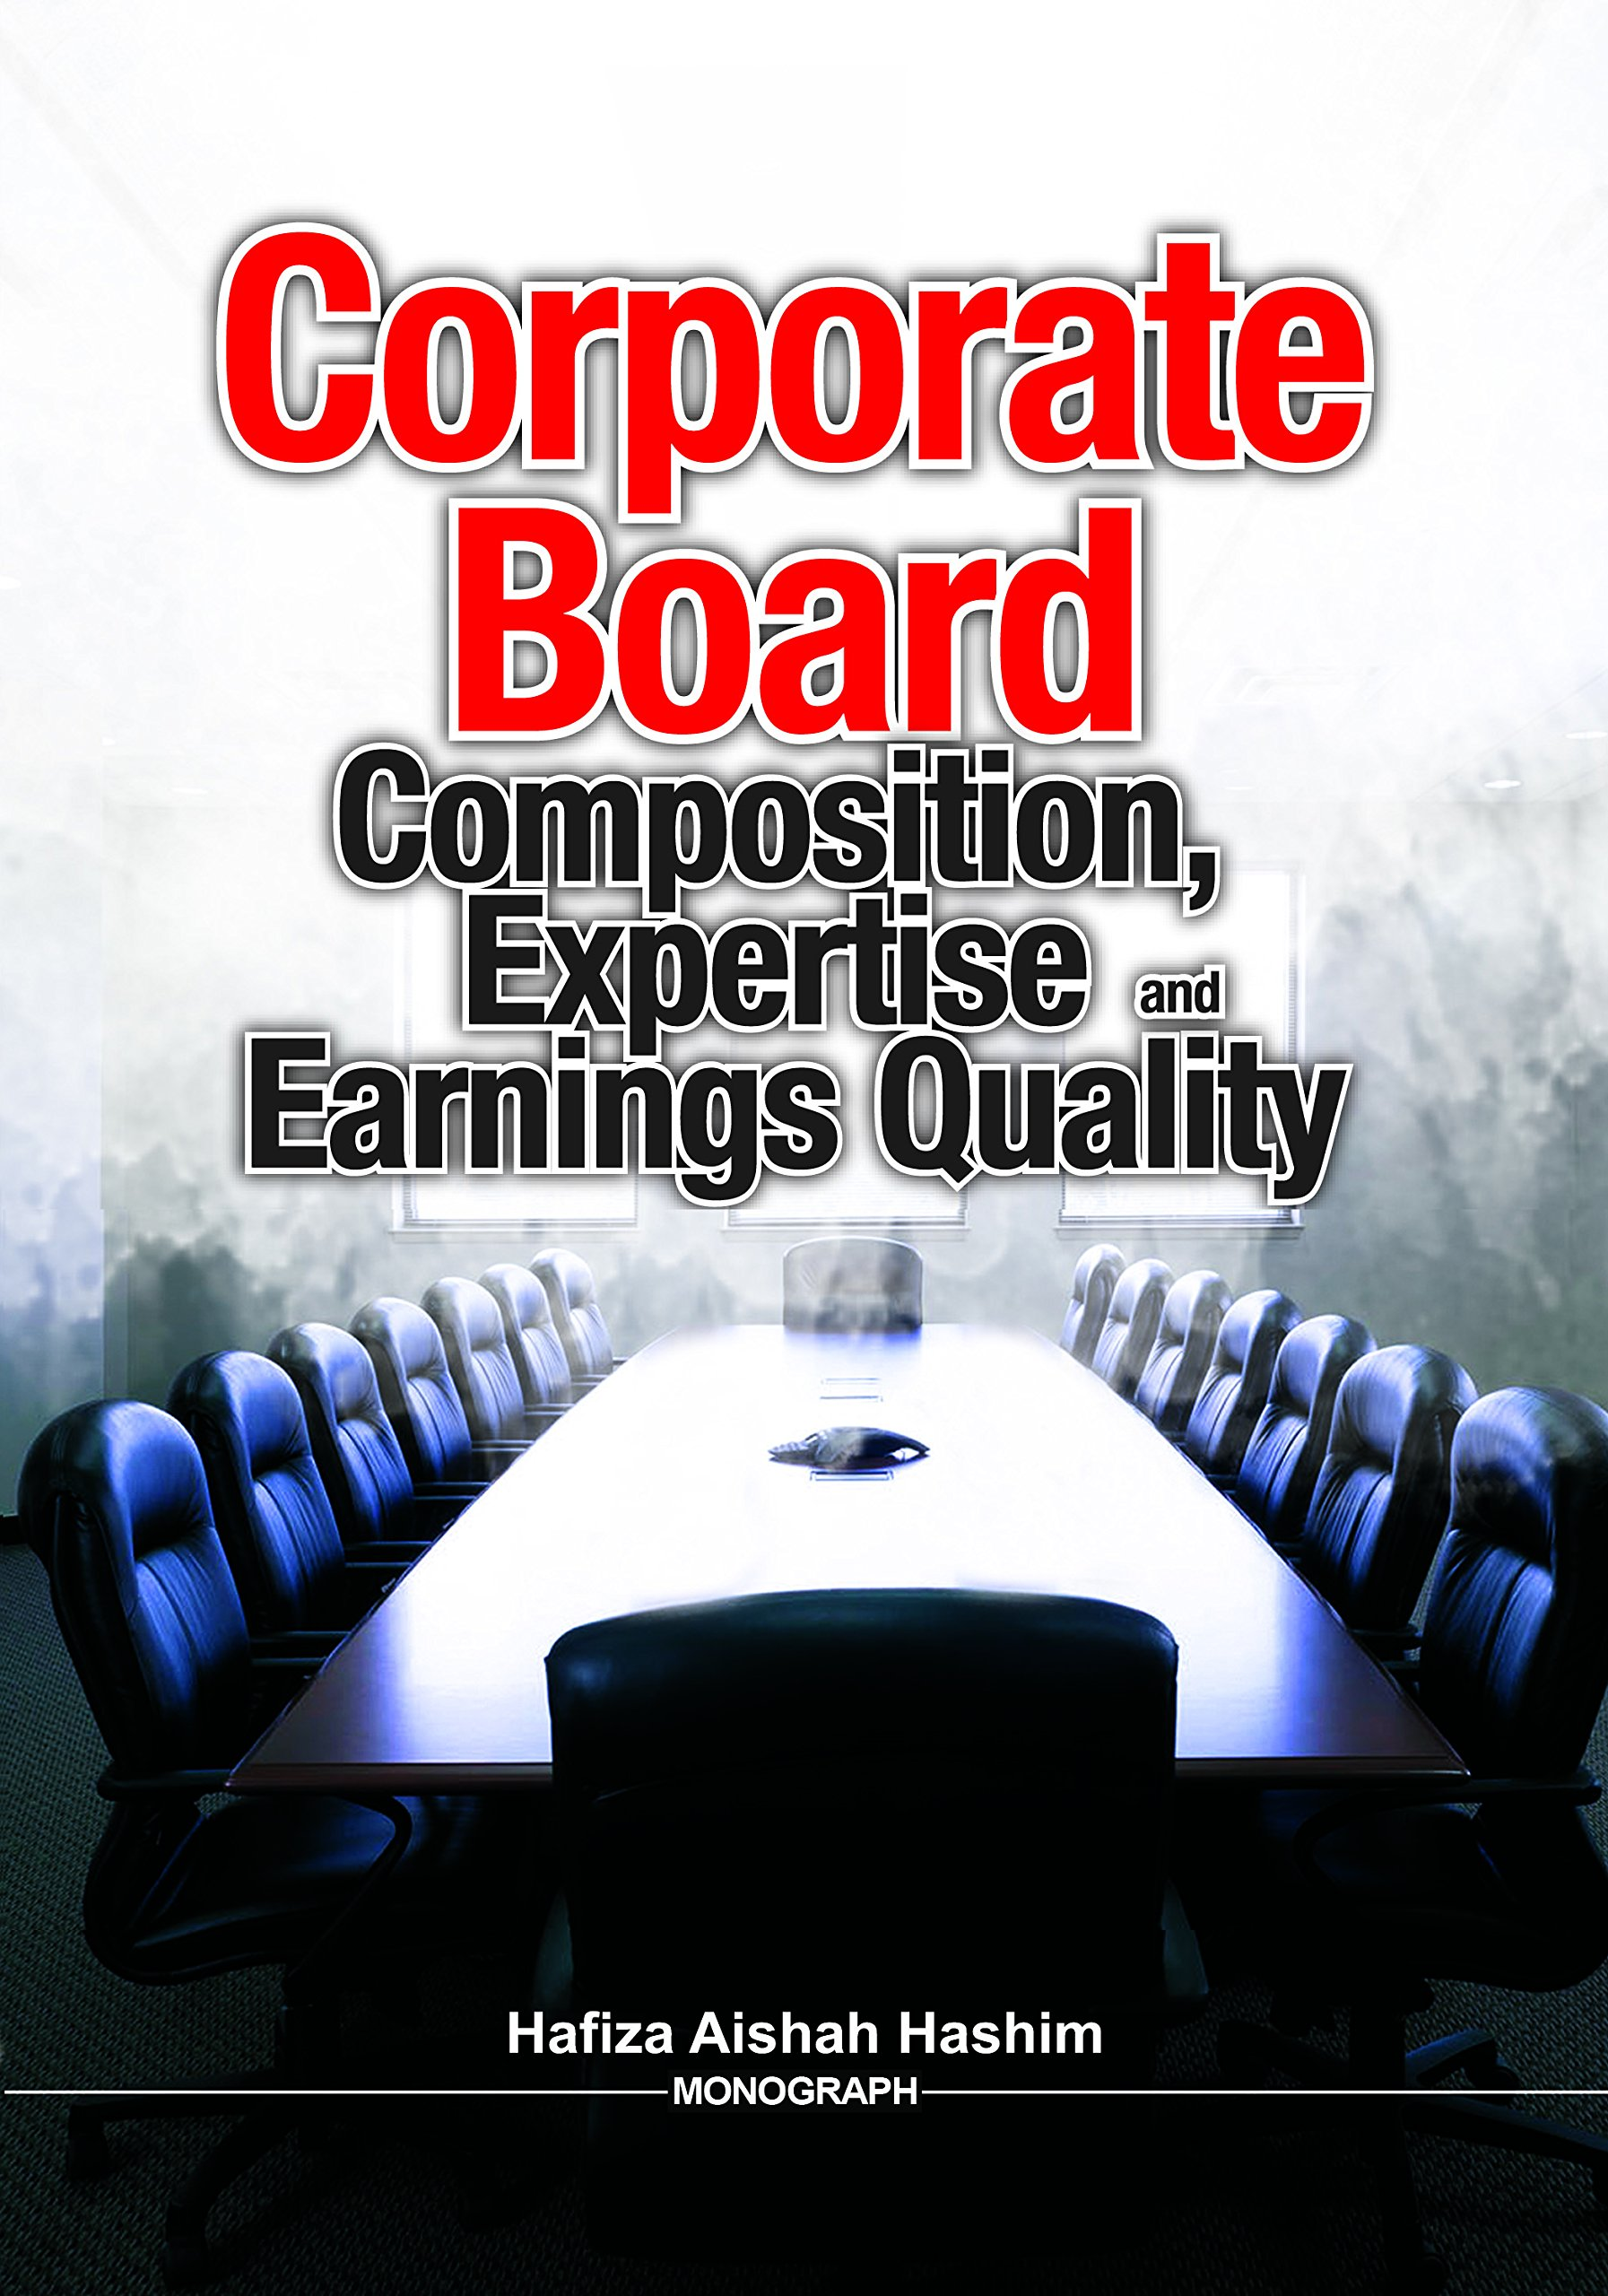 Read Online CORPORATE BOARD: COMPOSITION, EXPERTISE AND EARNINGS QUALITY PDF